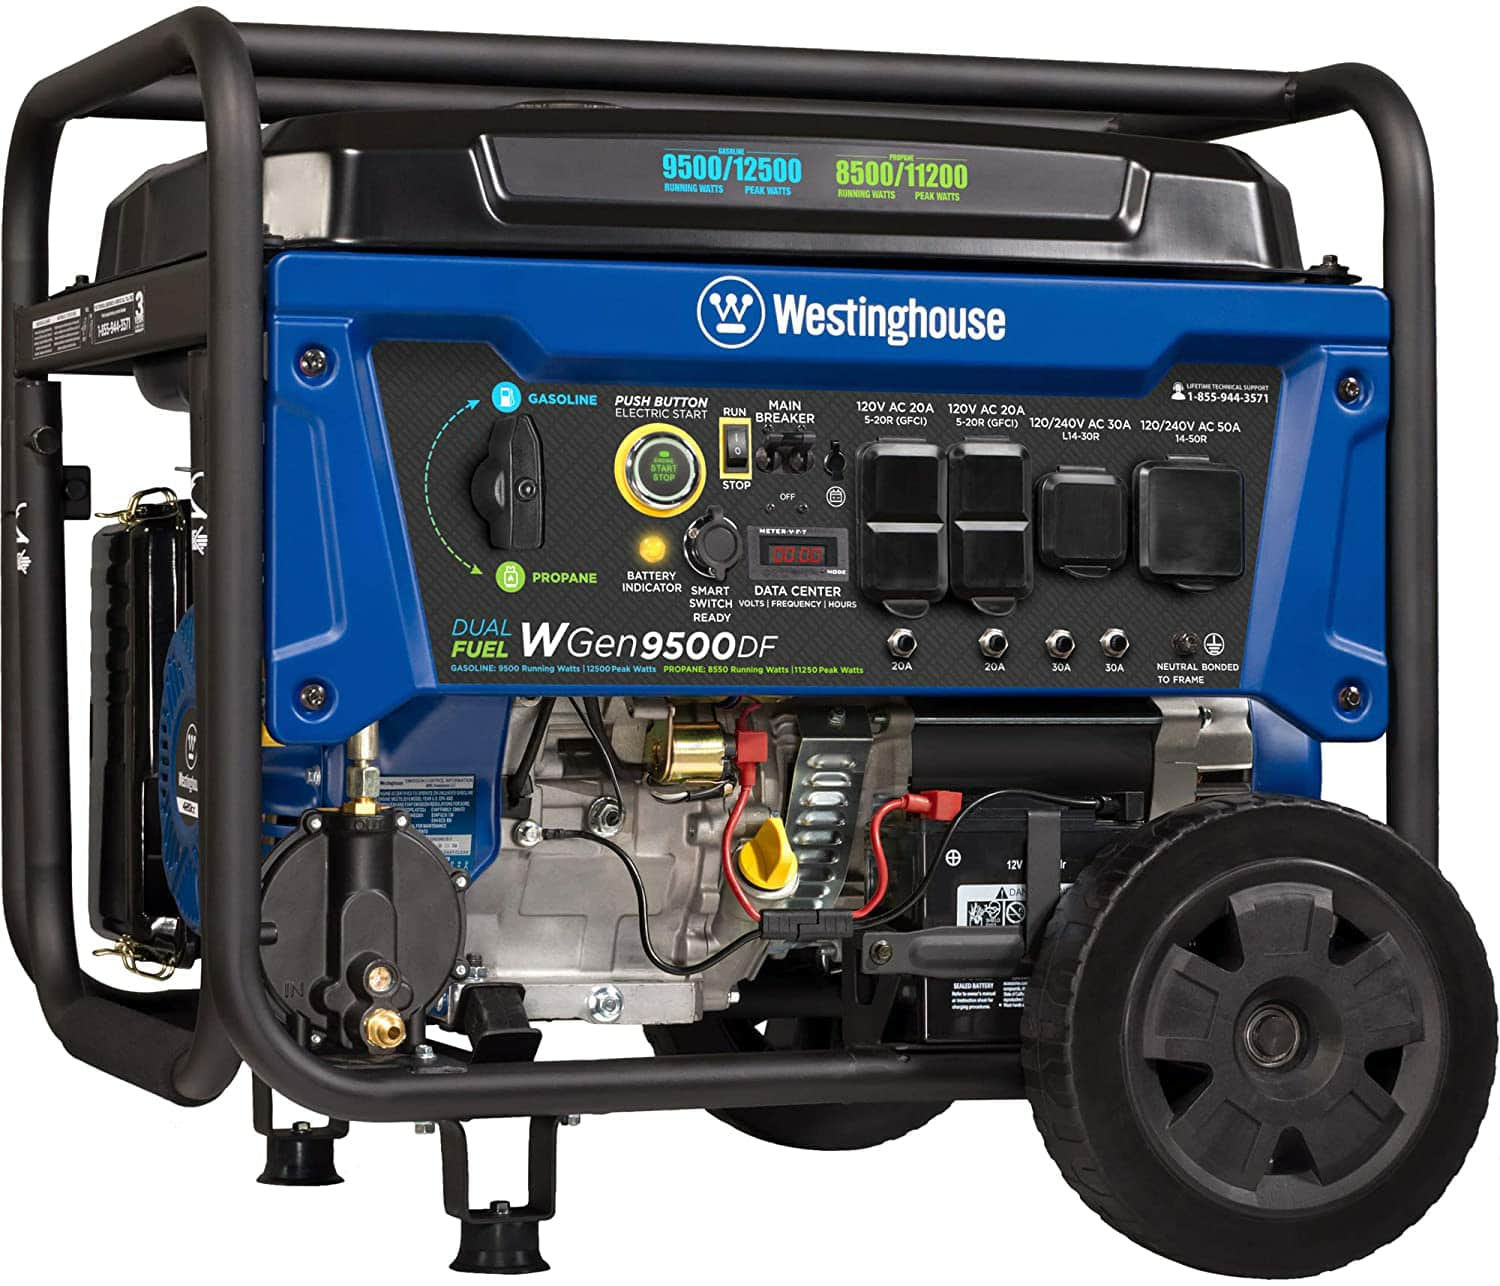 Westinghouse WGen9500DF Dual Fuel $832.90 on Amazon